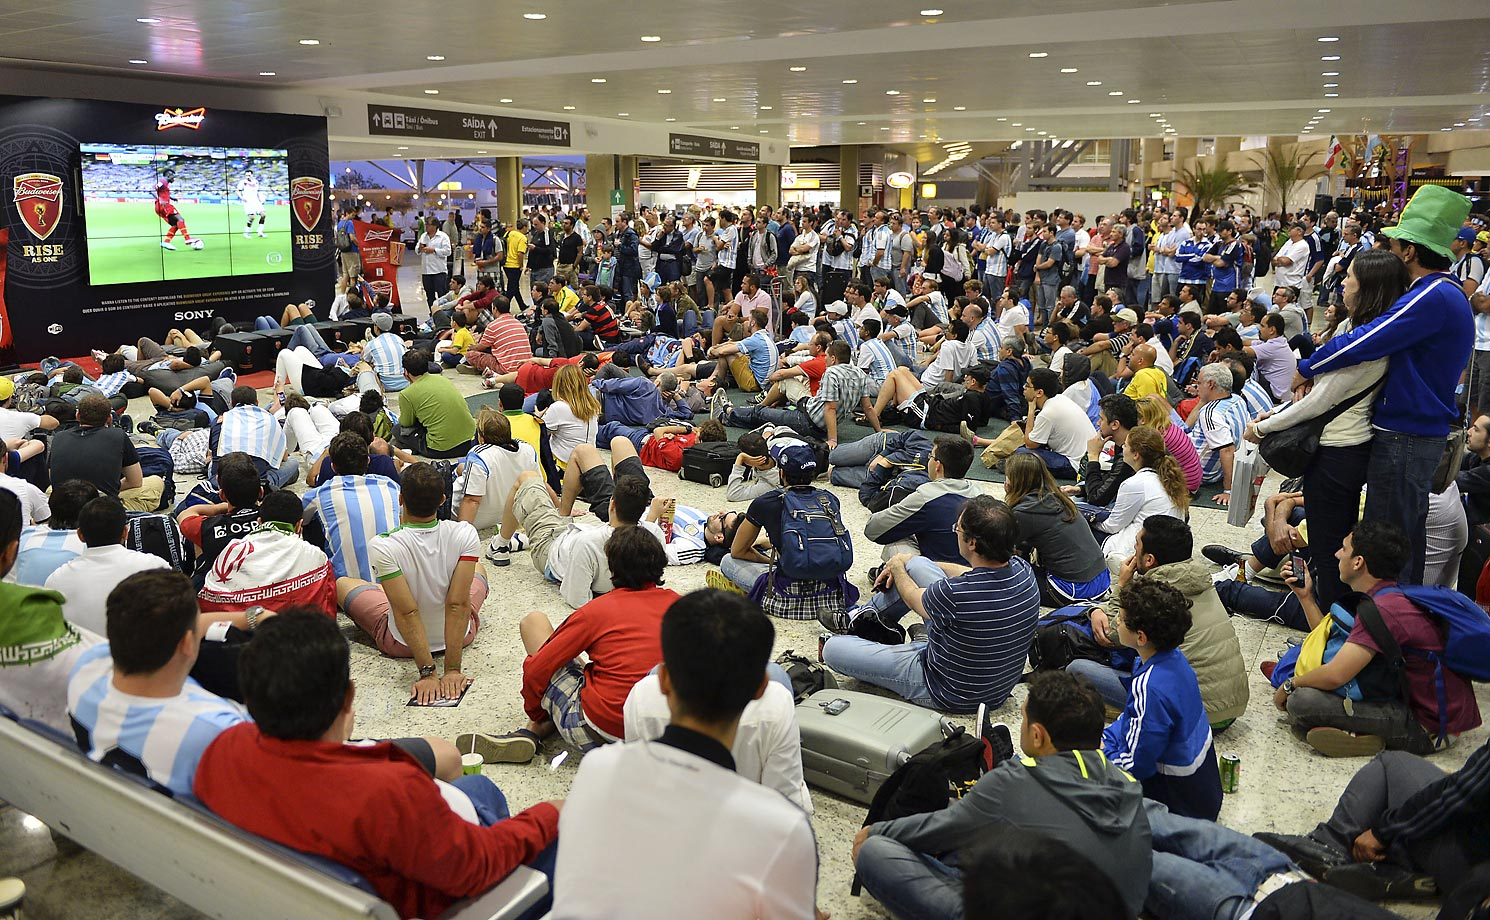 Travelers watch the match between Germany and Ghana on a screen in the departure lobby at the airport in Belo Horizonte, Brazil.